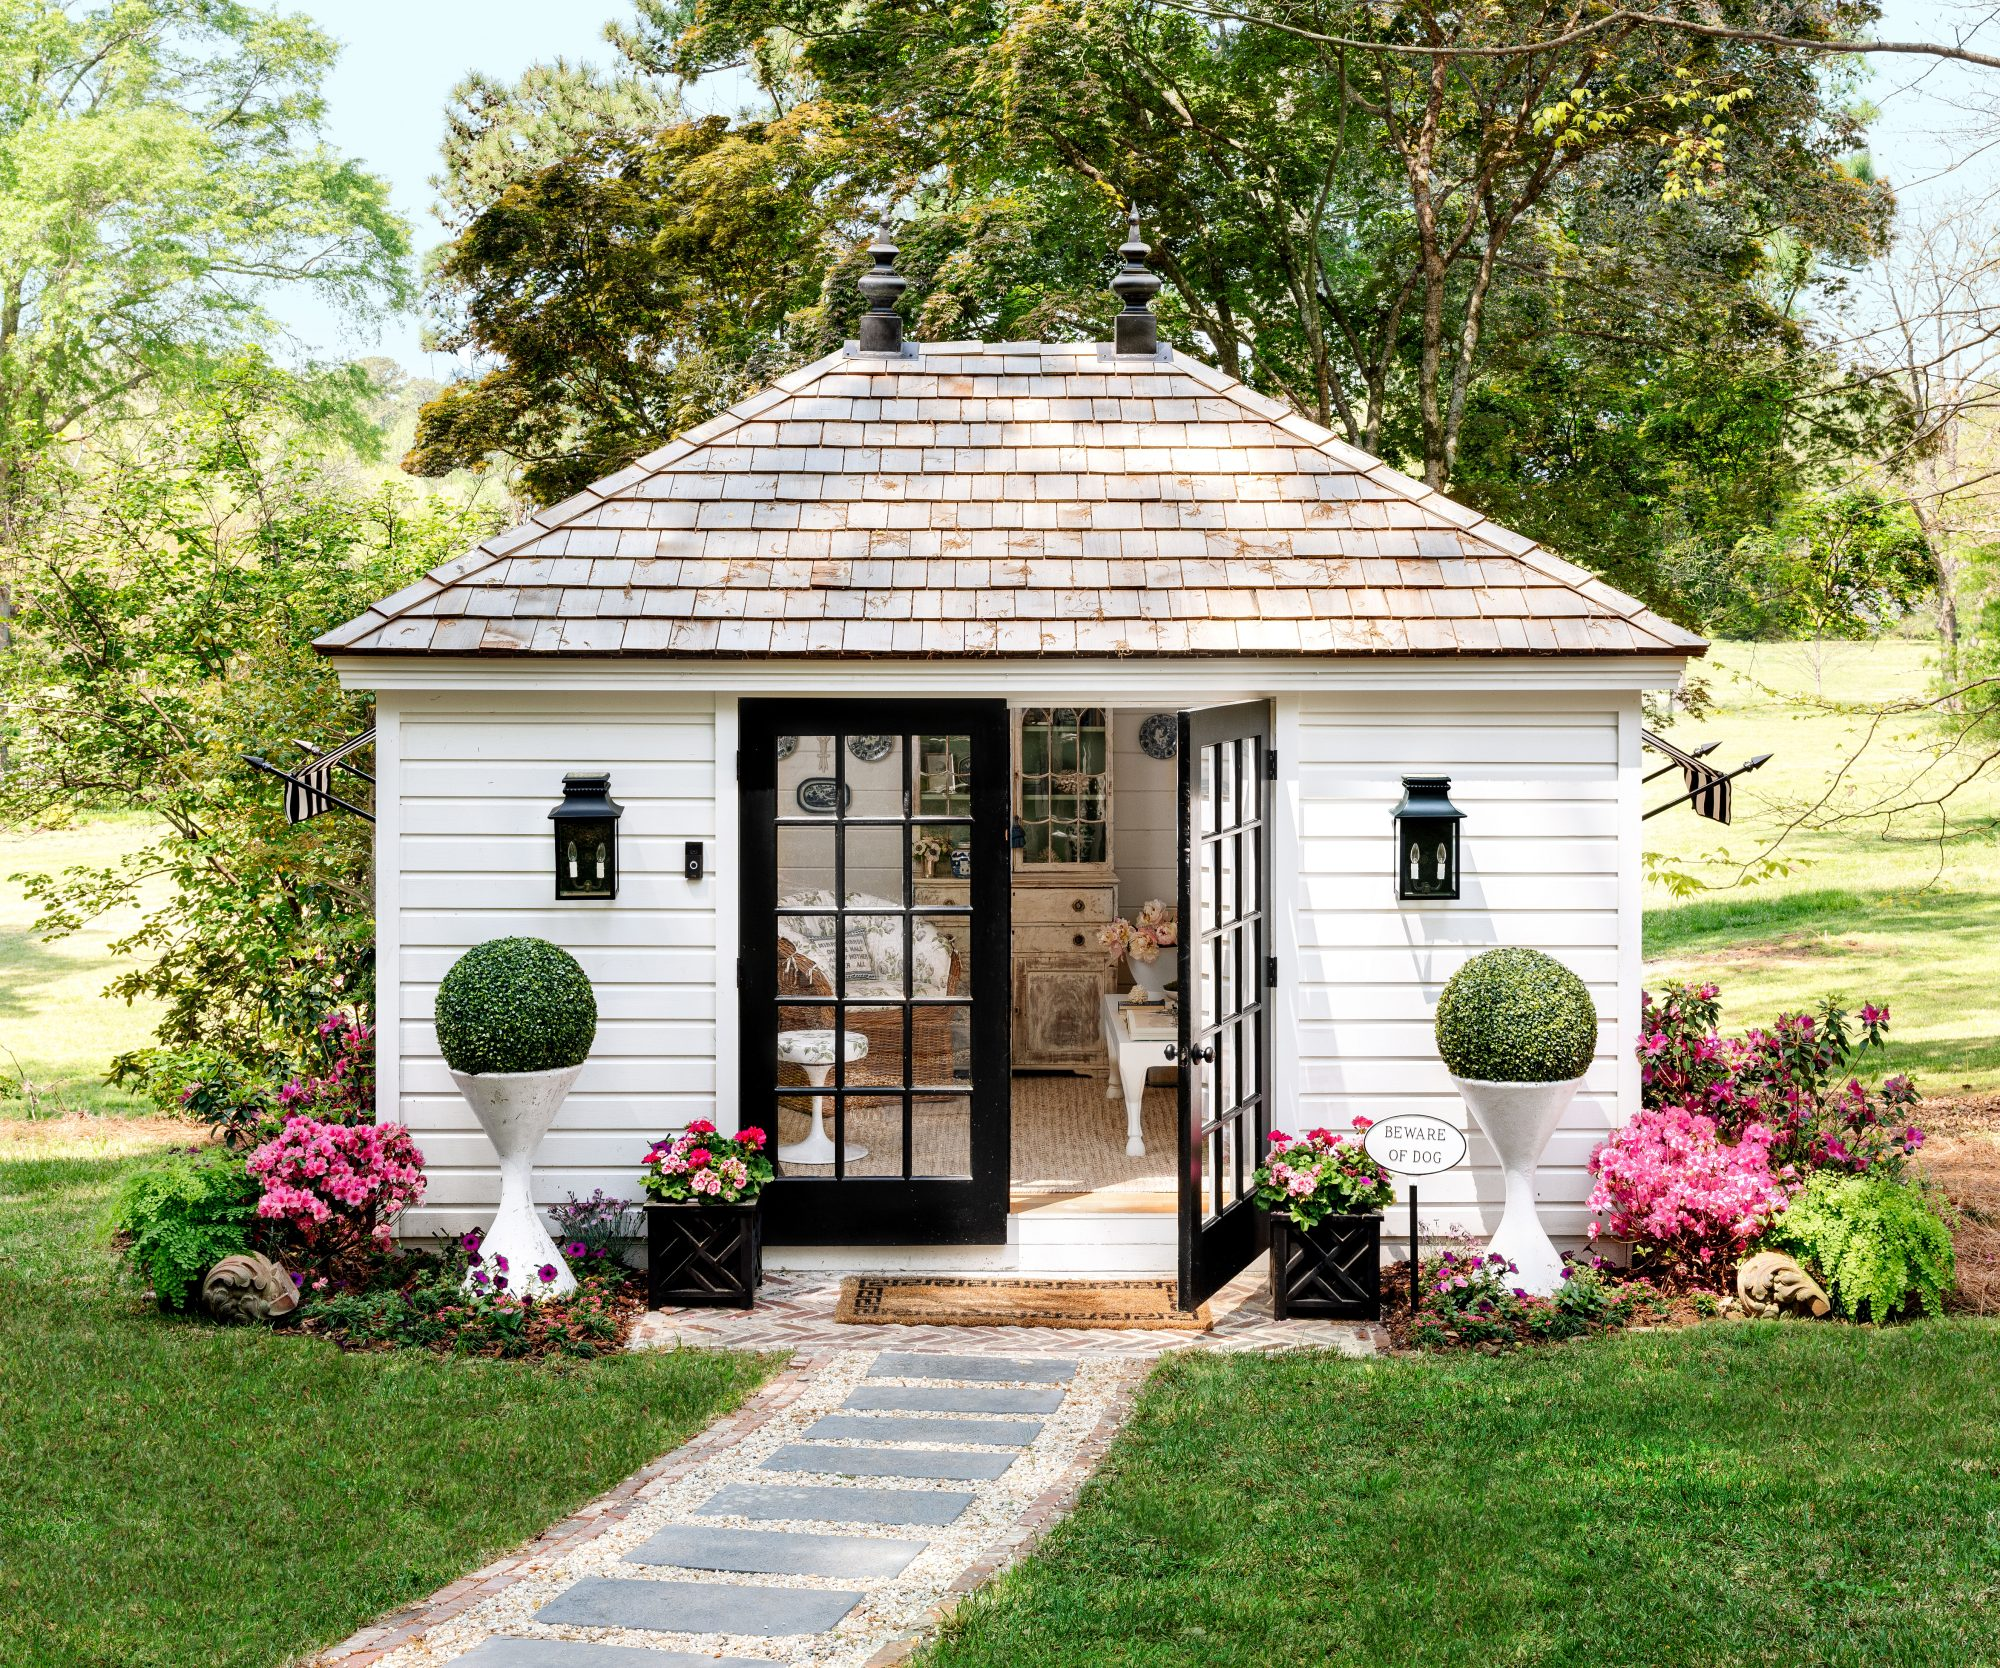 Hillbrook Collections' Garden Shed Office for Allison Allen